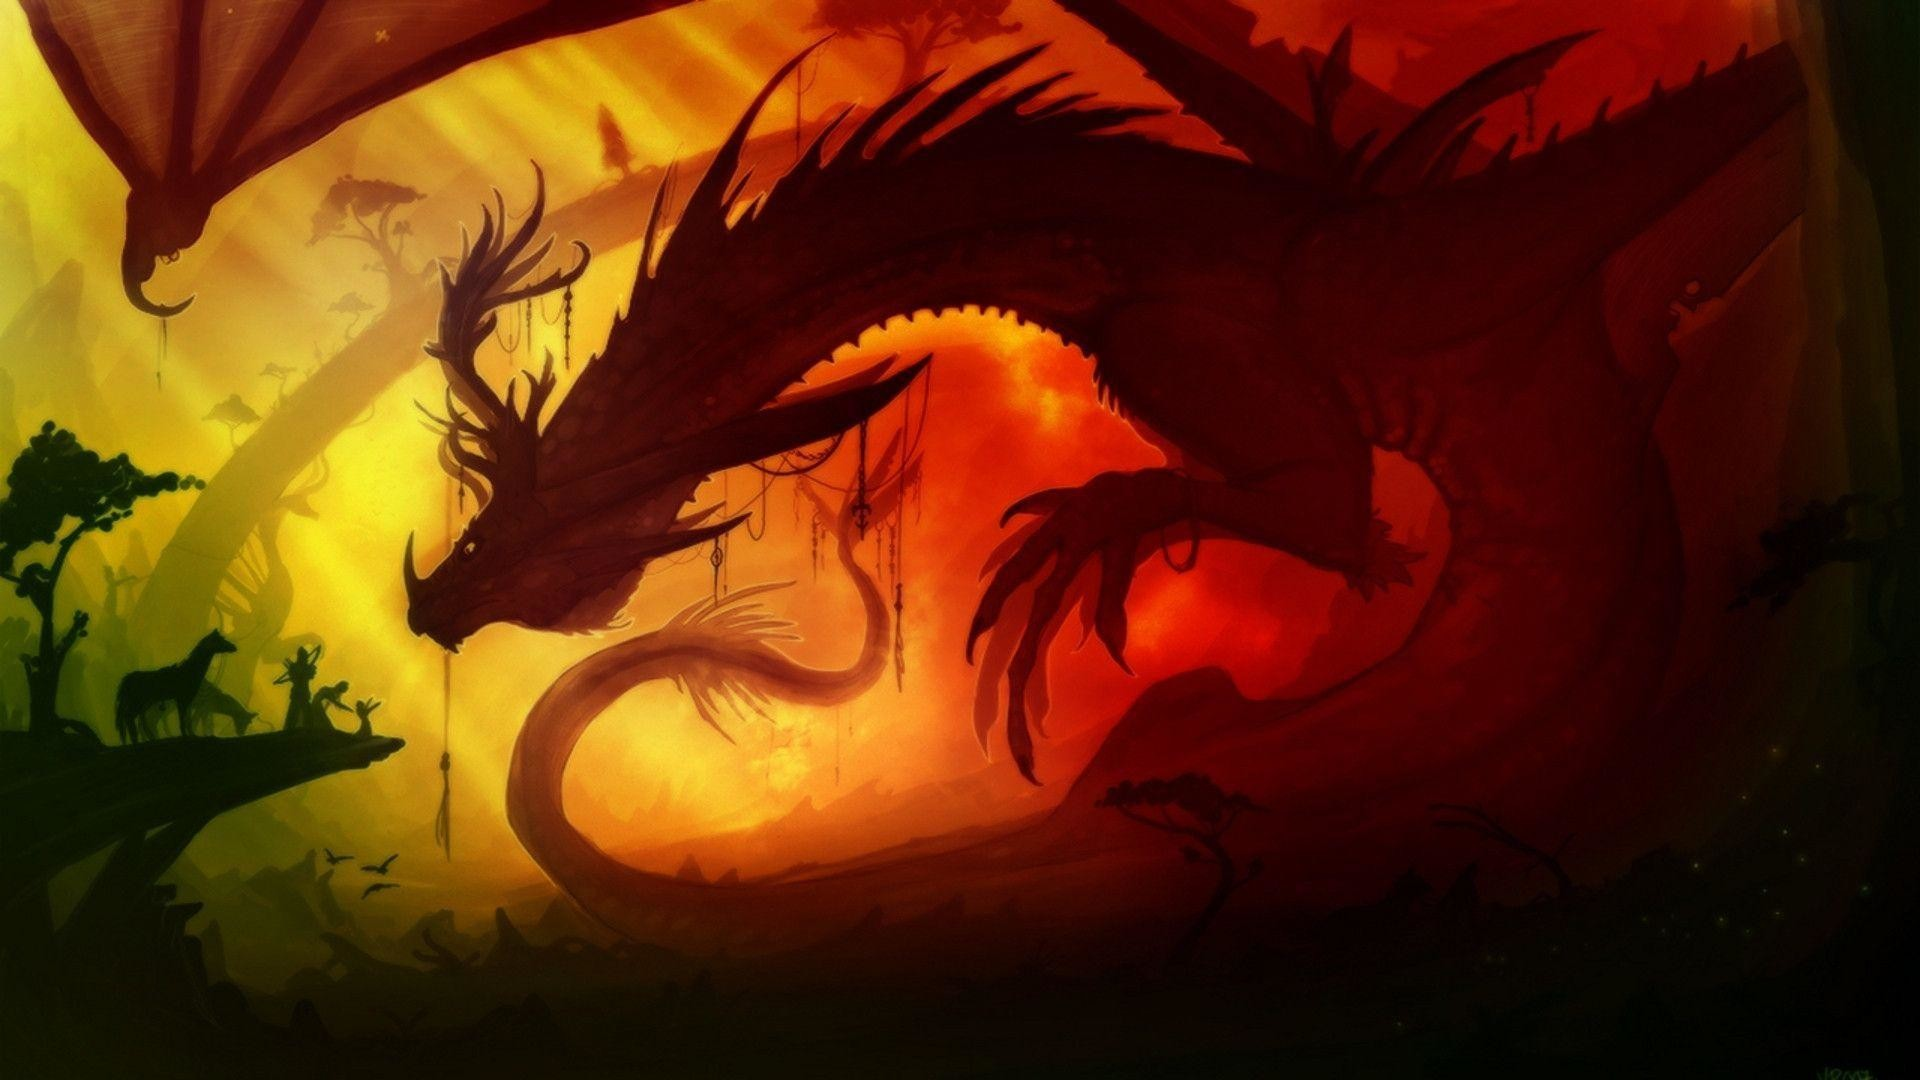 1920x1080 Red Dragon Wallpapers 1920x1080PX ~ Wallpaper Red Dragon #33784